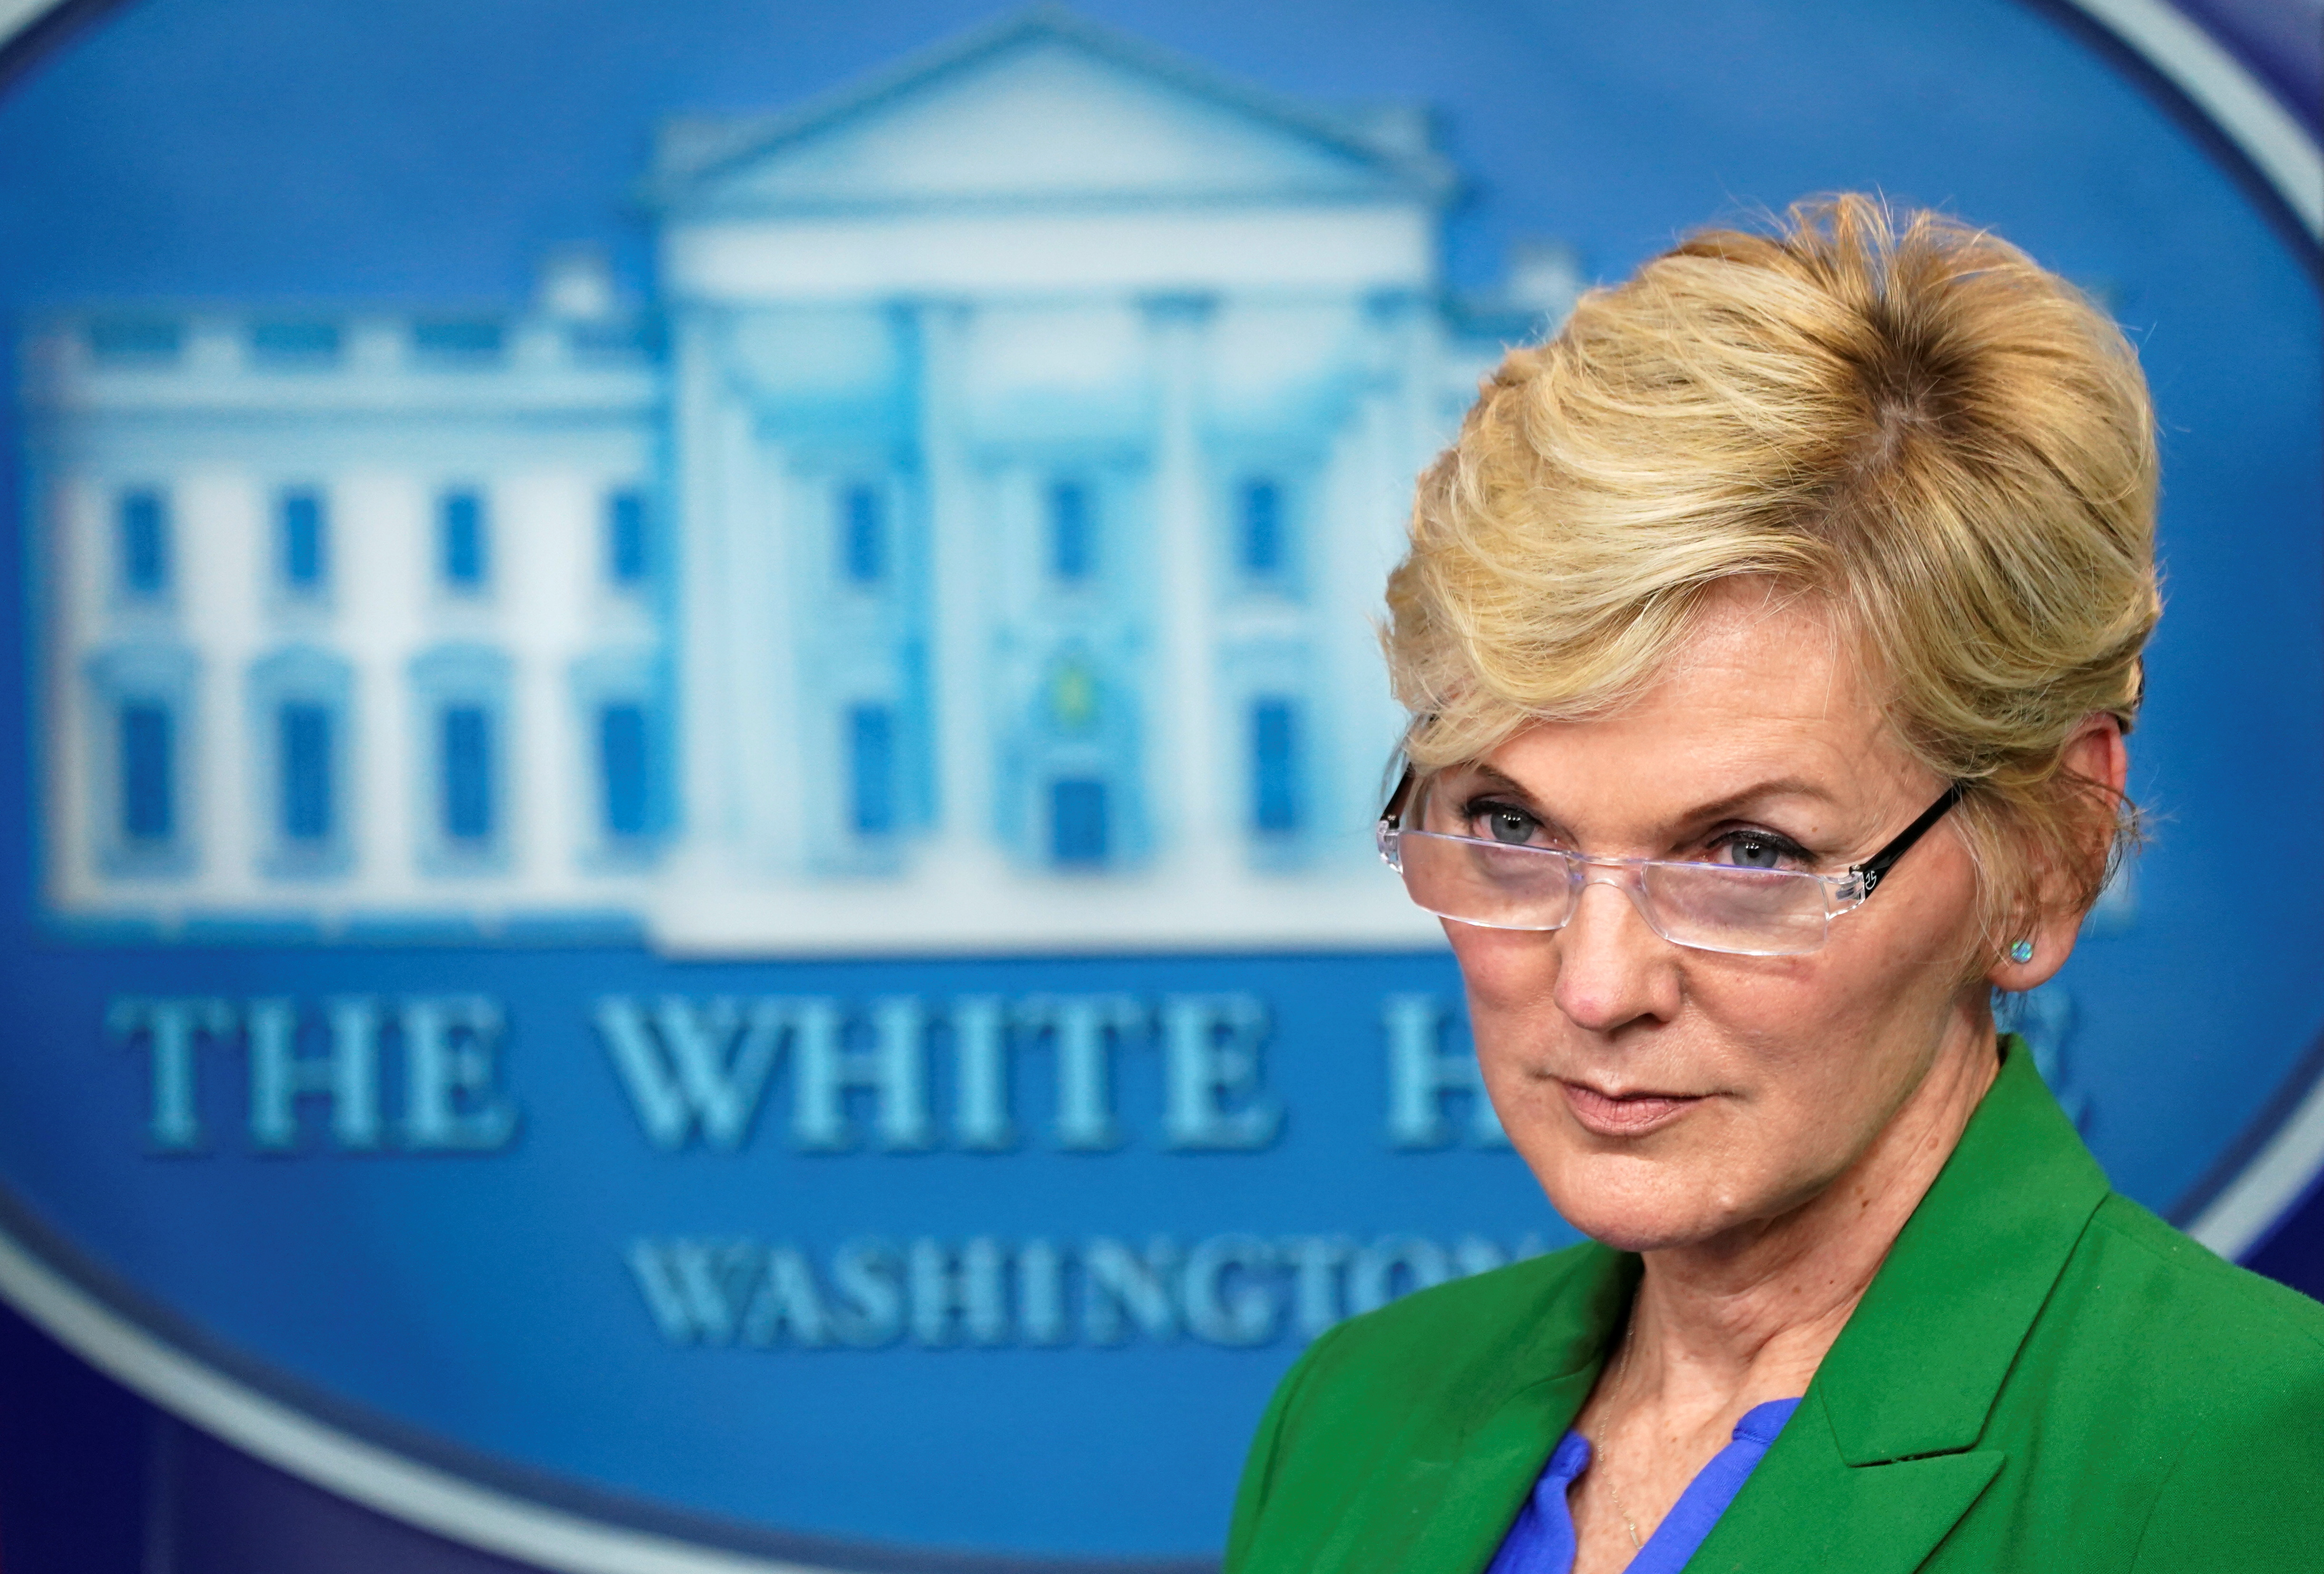 U.S. Energy Secretary Jennifer Granholm listens to a question during a press briefing about the Colonial Pipeline cyberattack shutdown, at the White House in Washington, U.S., May 11, 2021. REUTERS/Kevin Lamarque